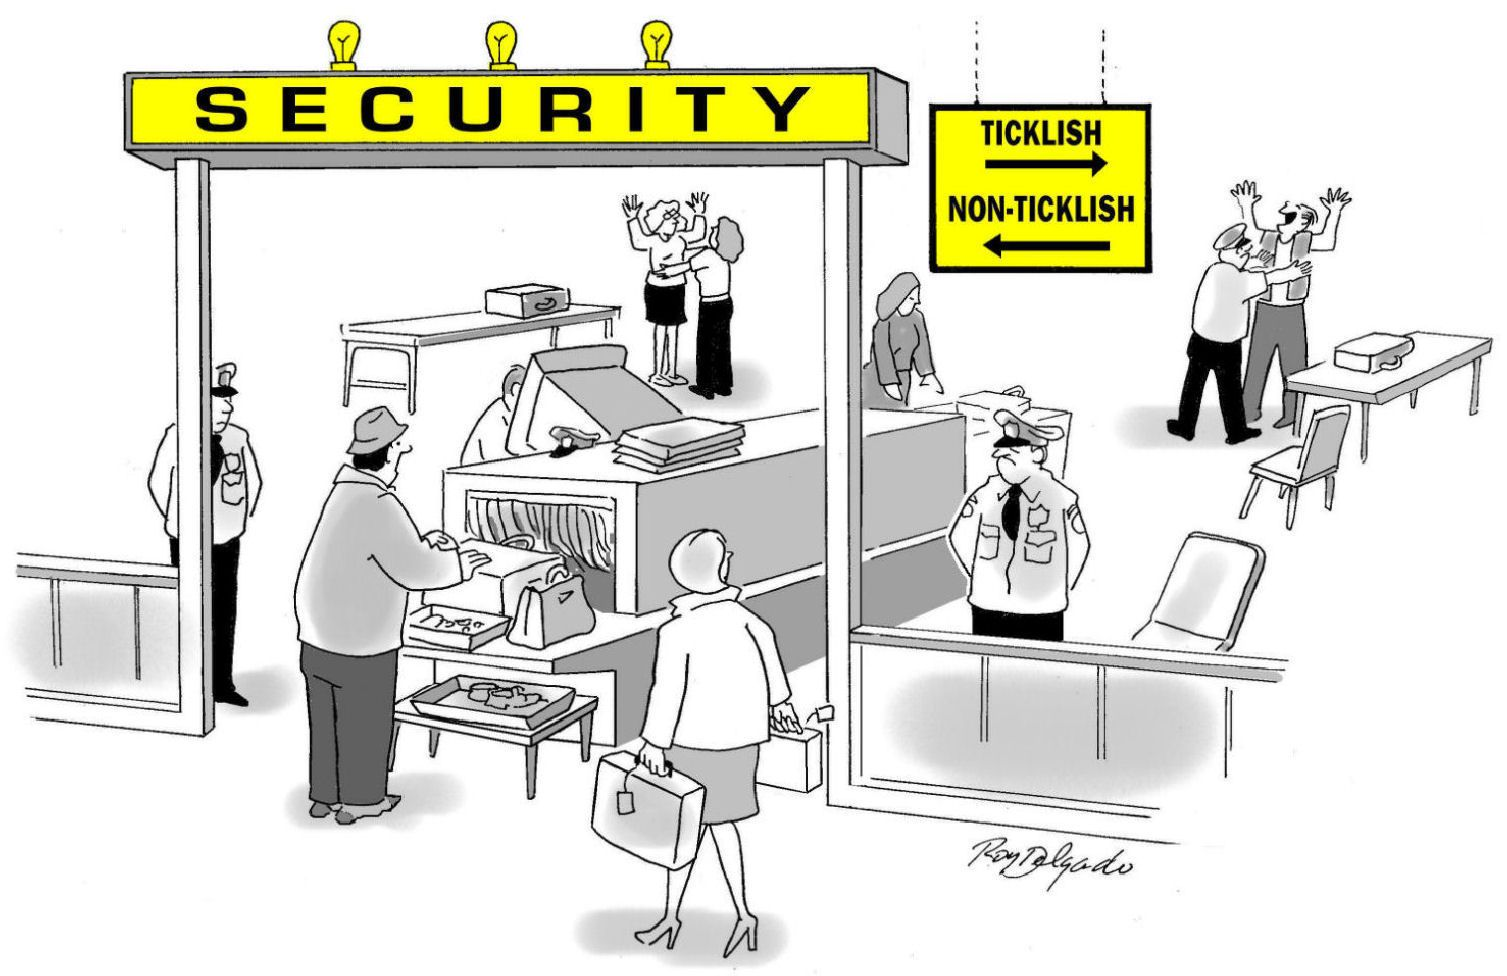 security airport clipart.